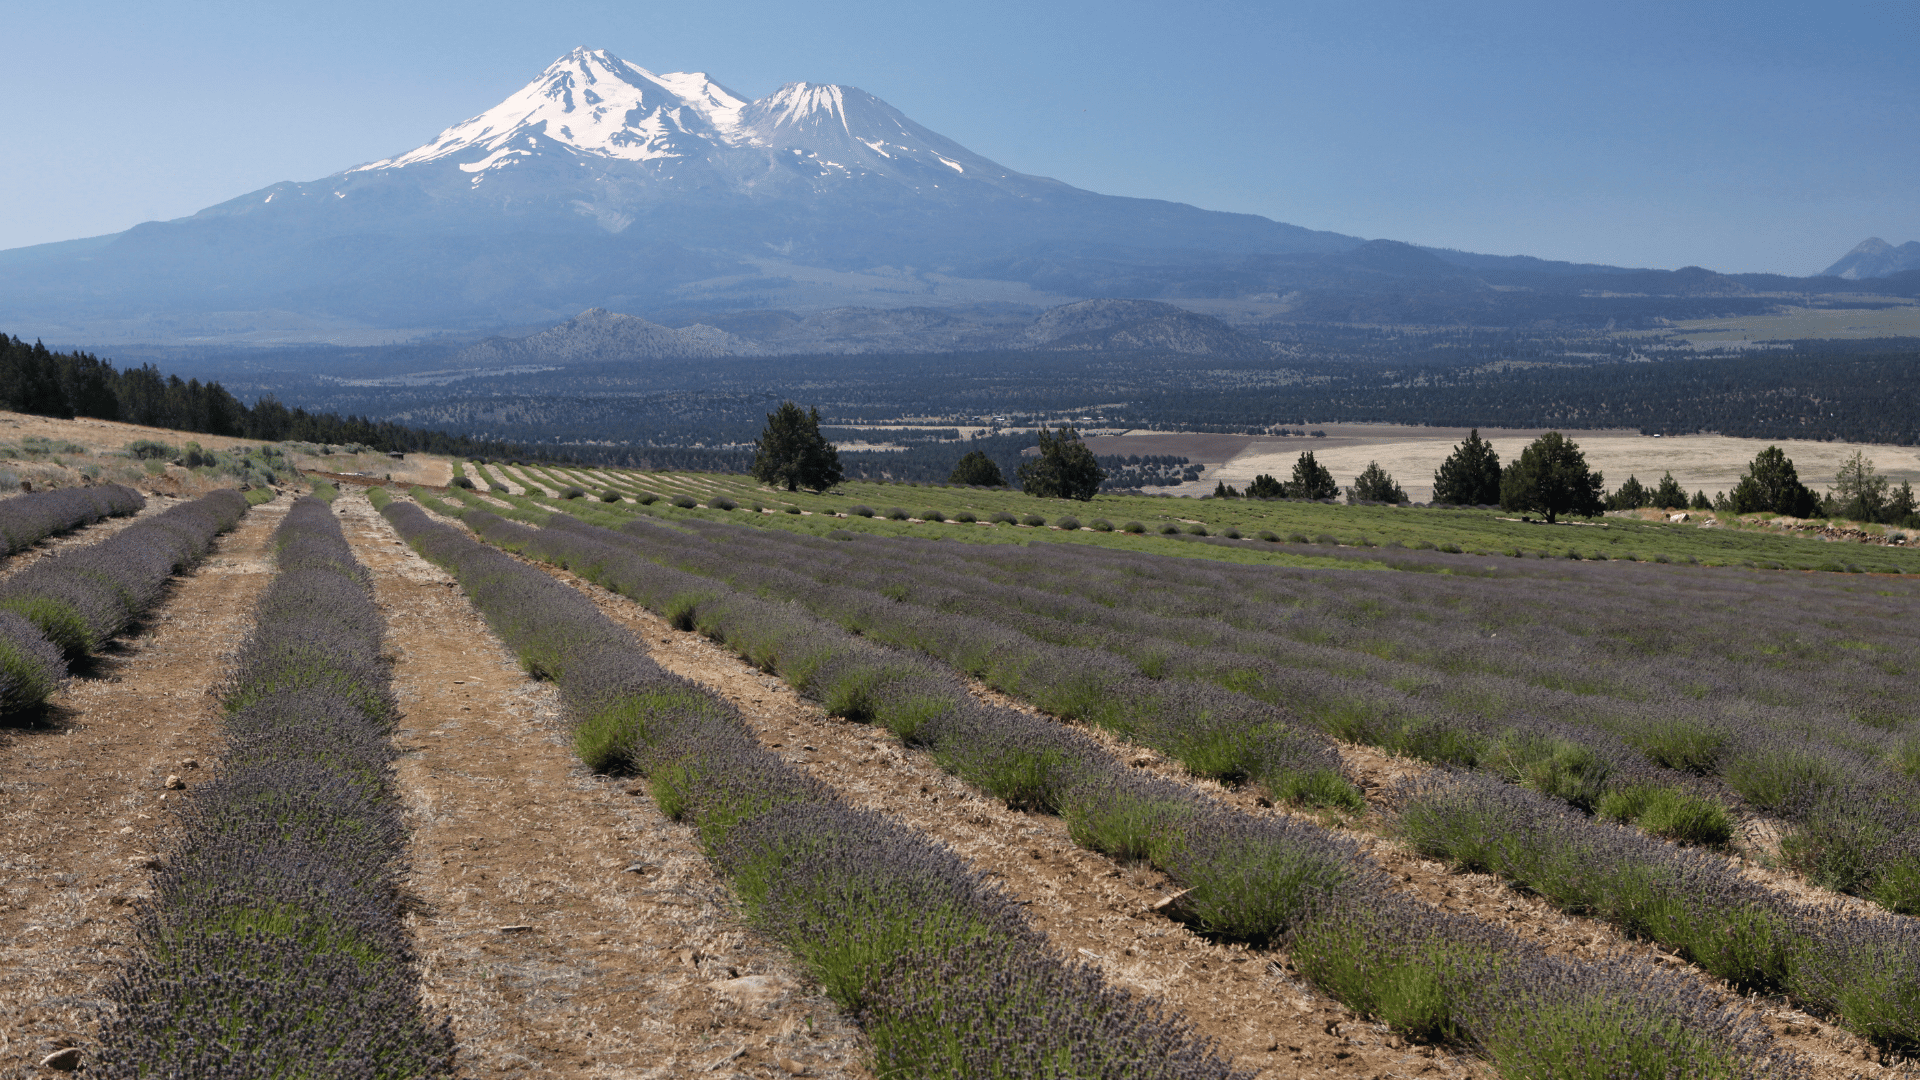 A sunny day in Mount Shasta